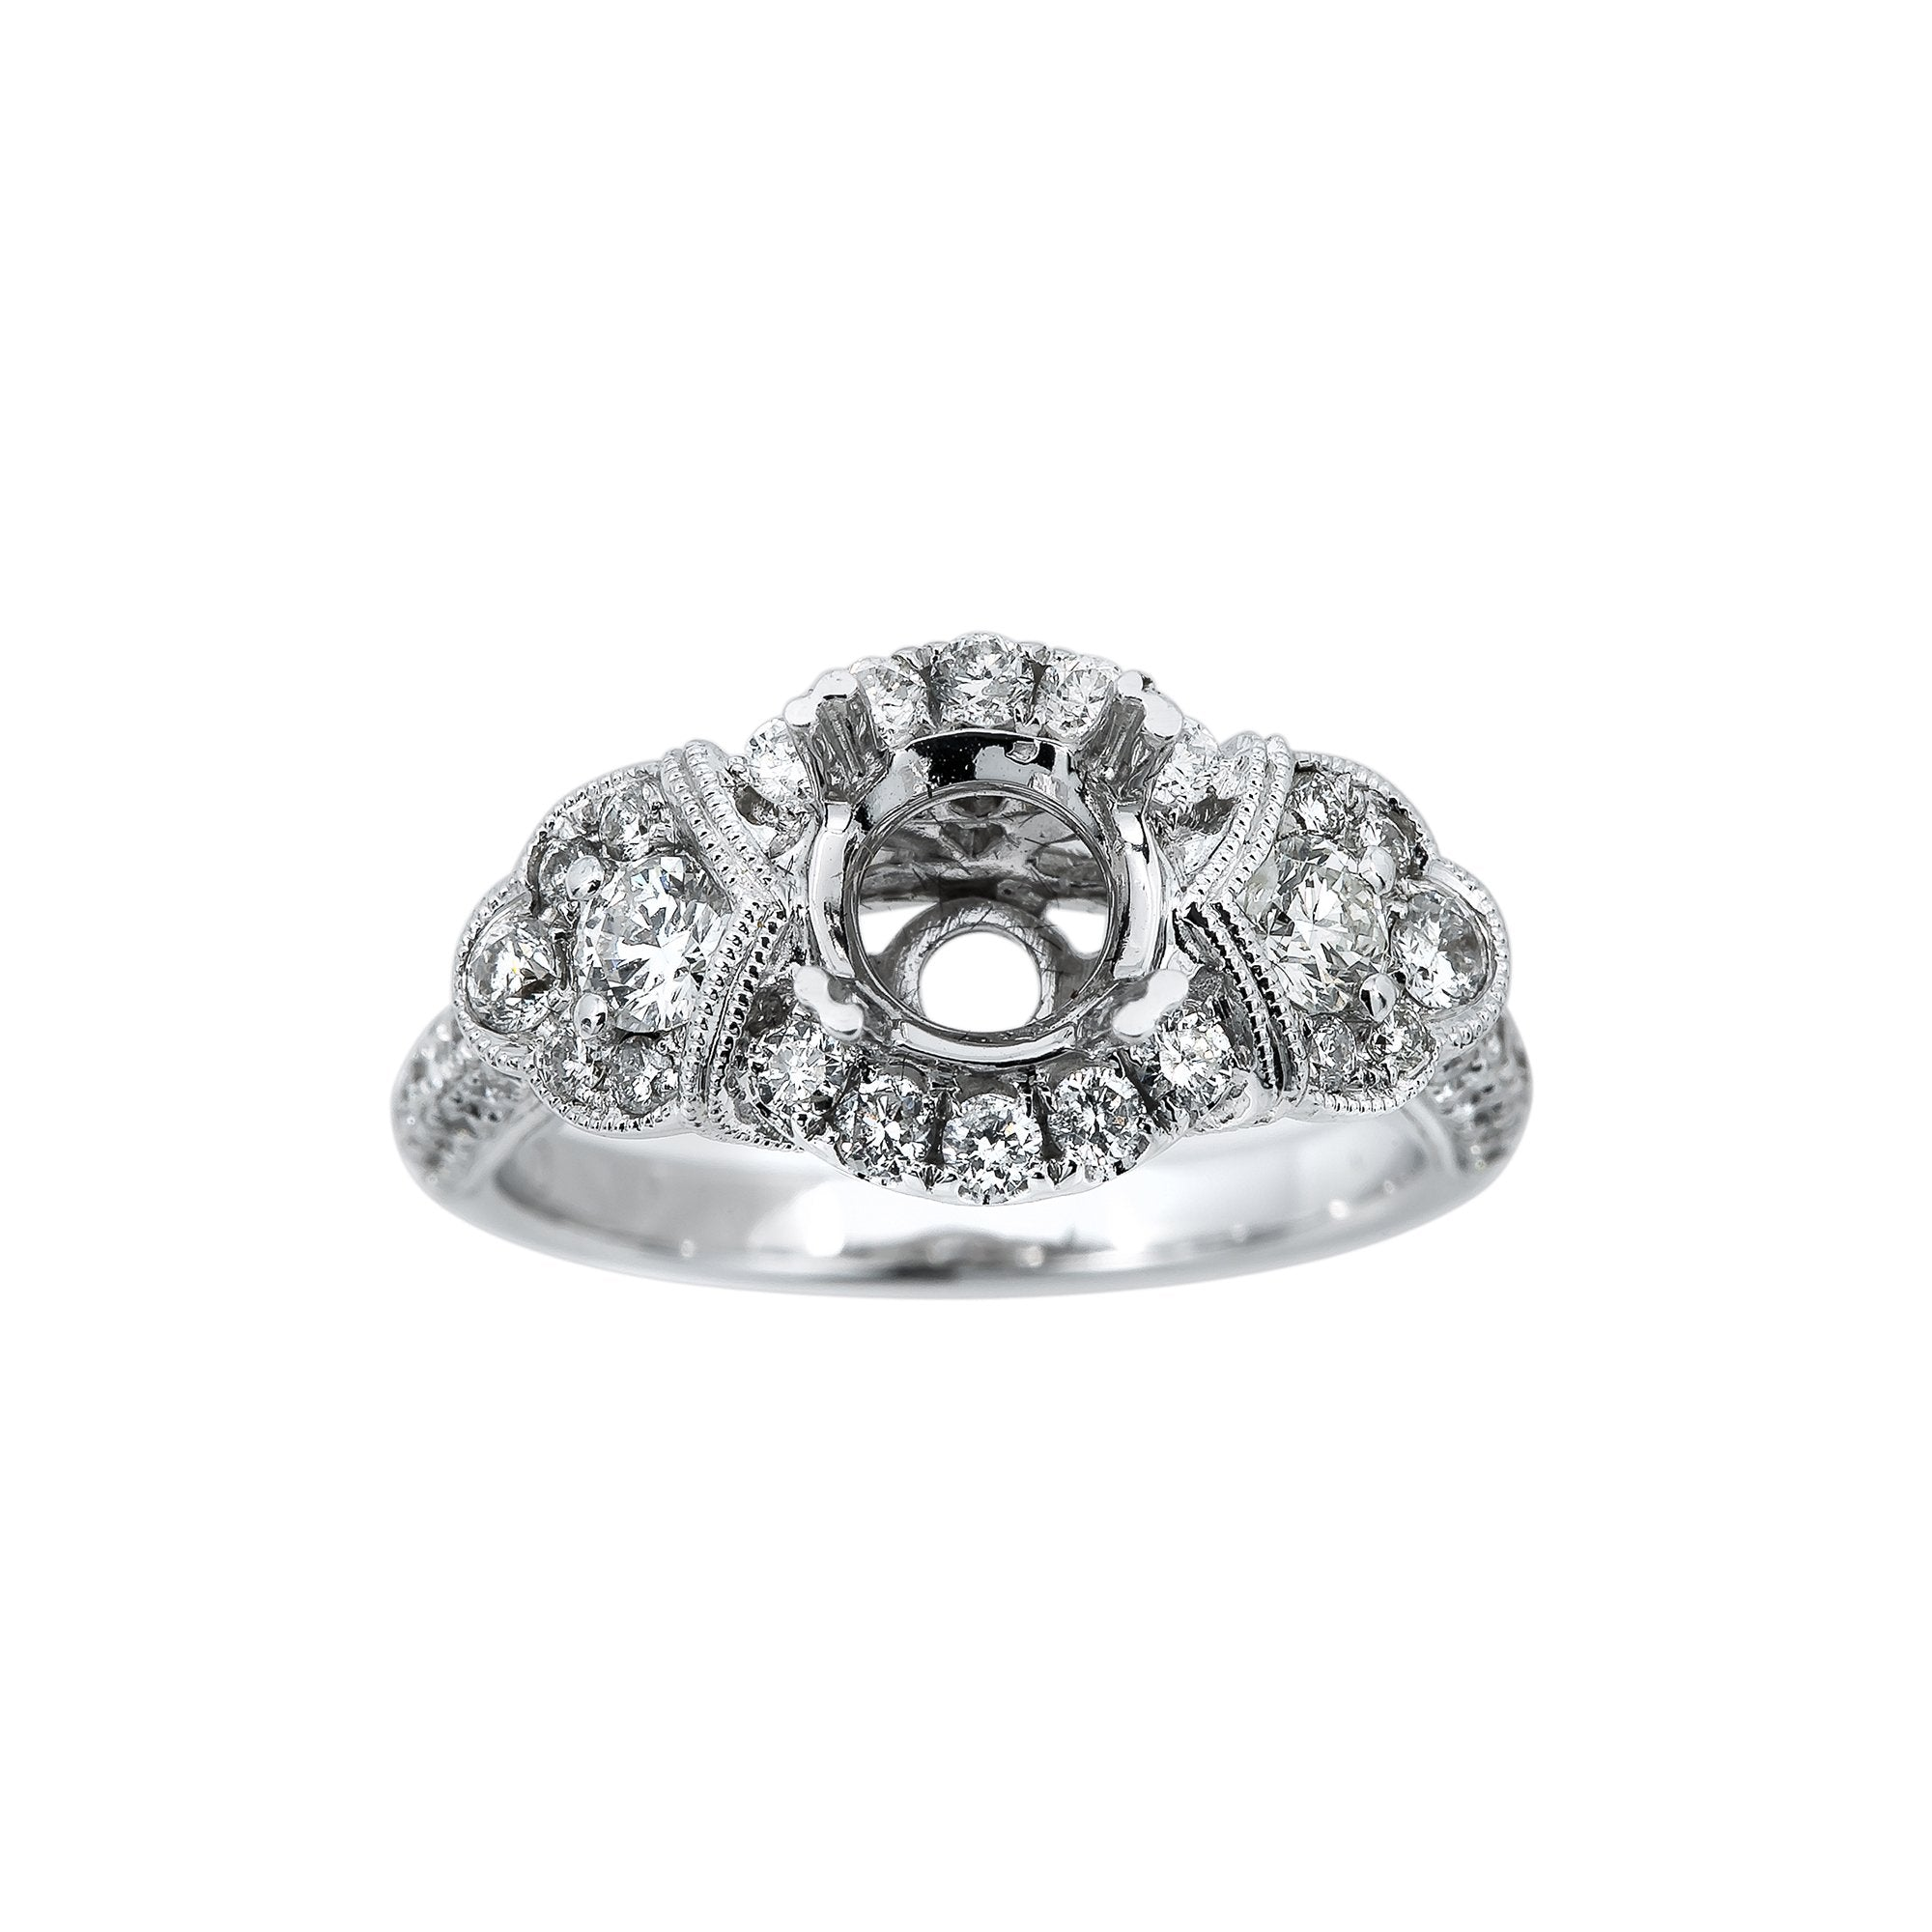 18K White Gold BJ7898R Women's Ring With 1.14 CT Diamonds